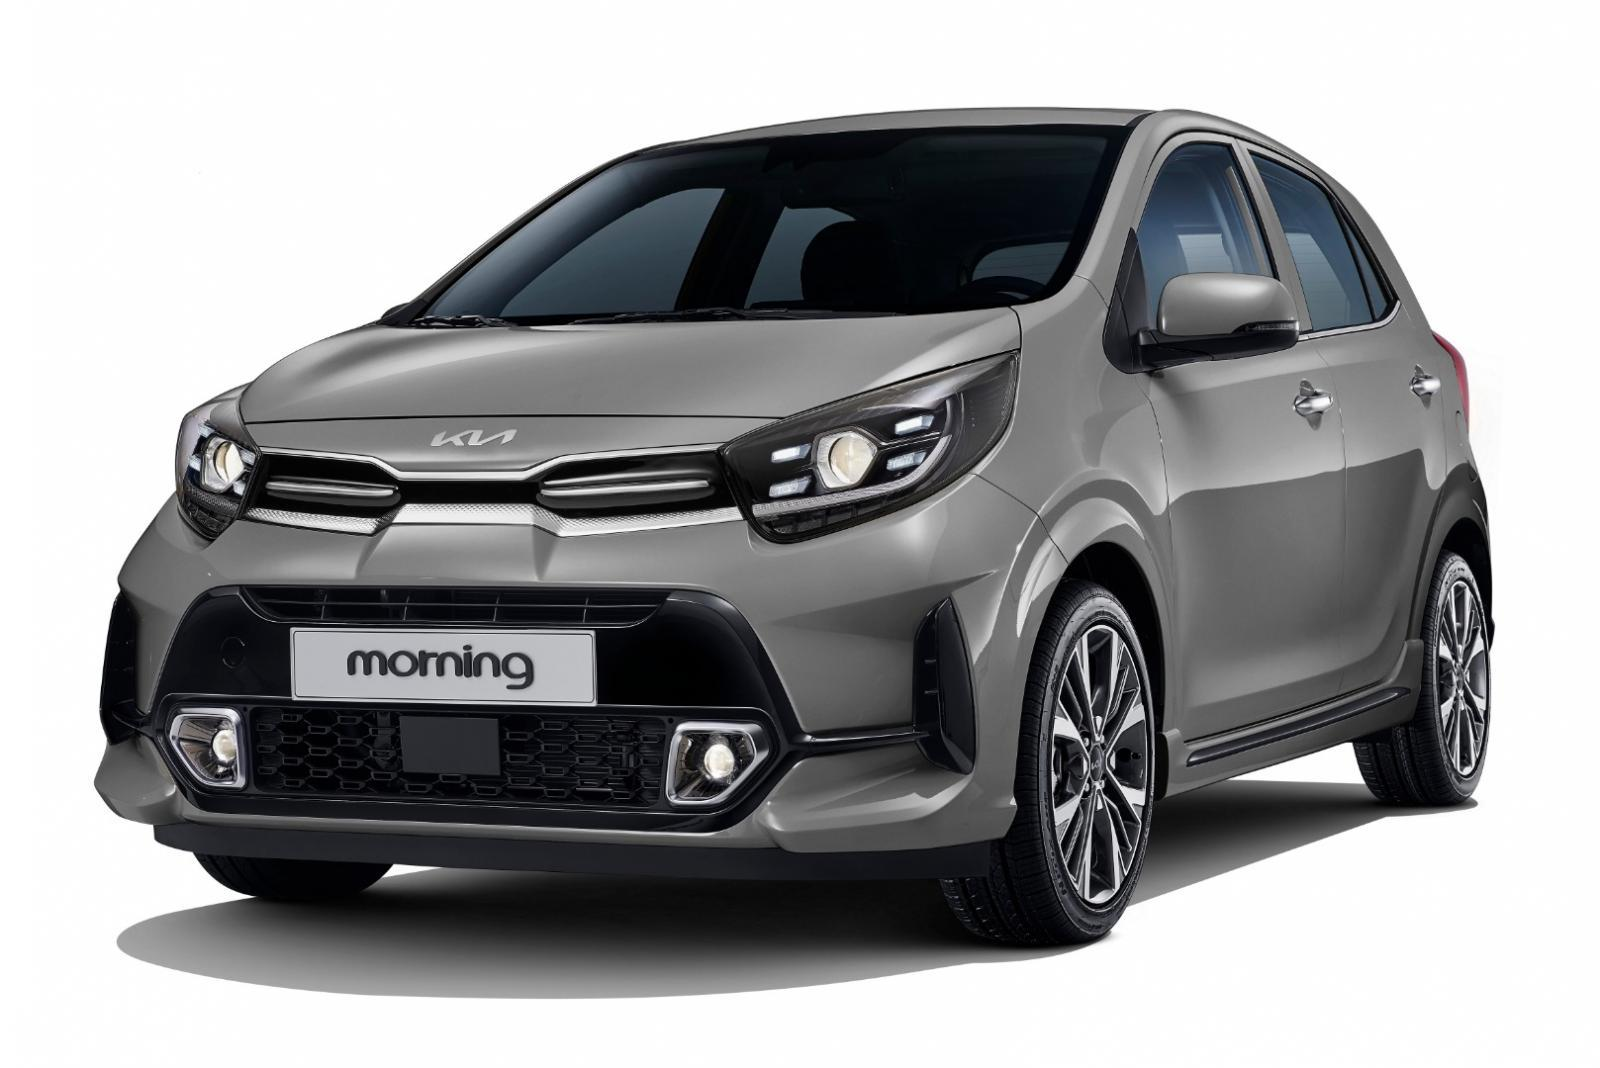 2022 Kia Picanto here in third quarter of 2021